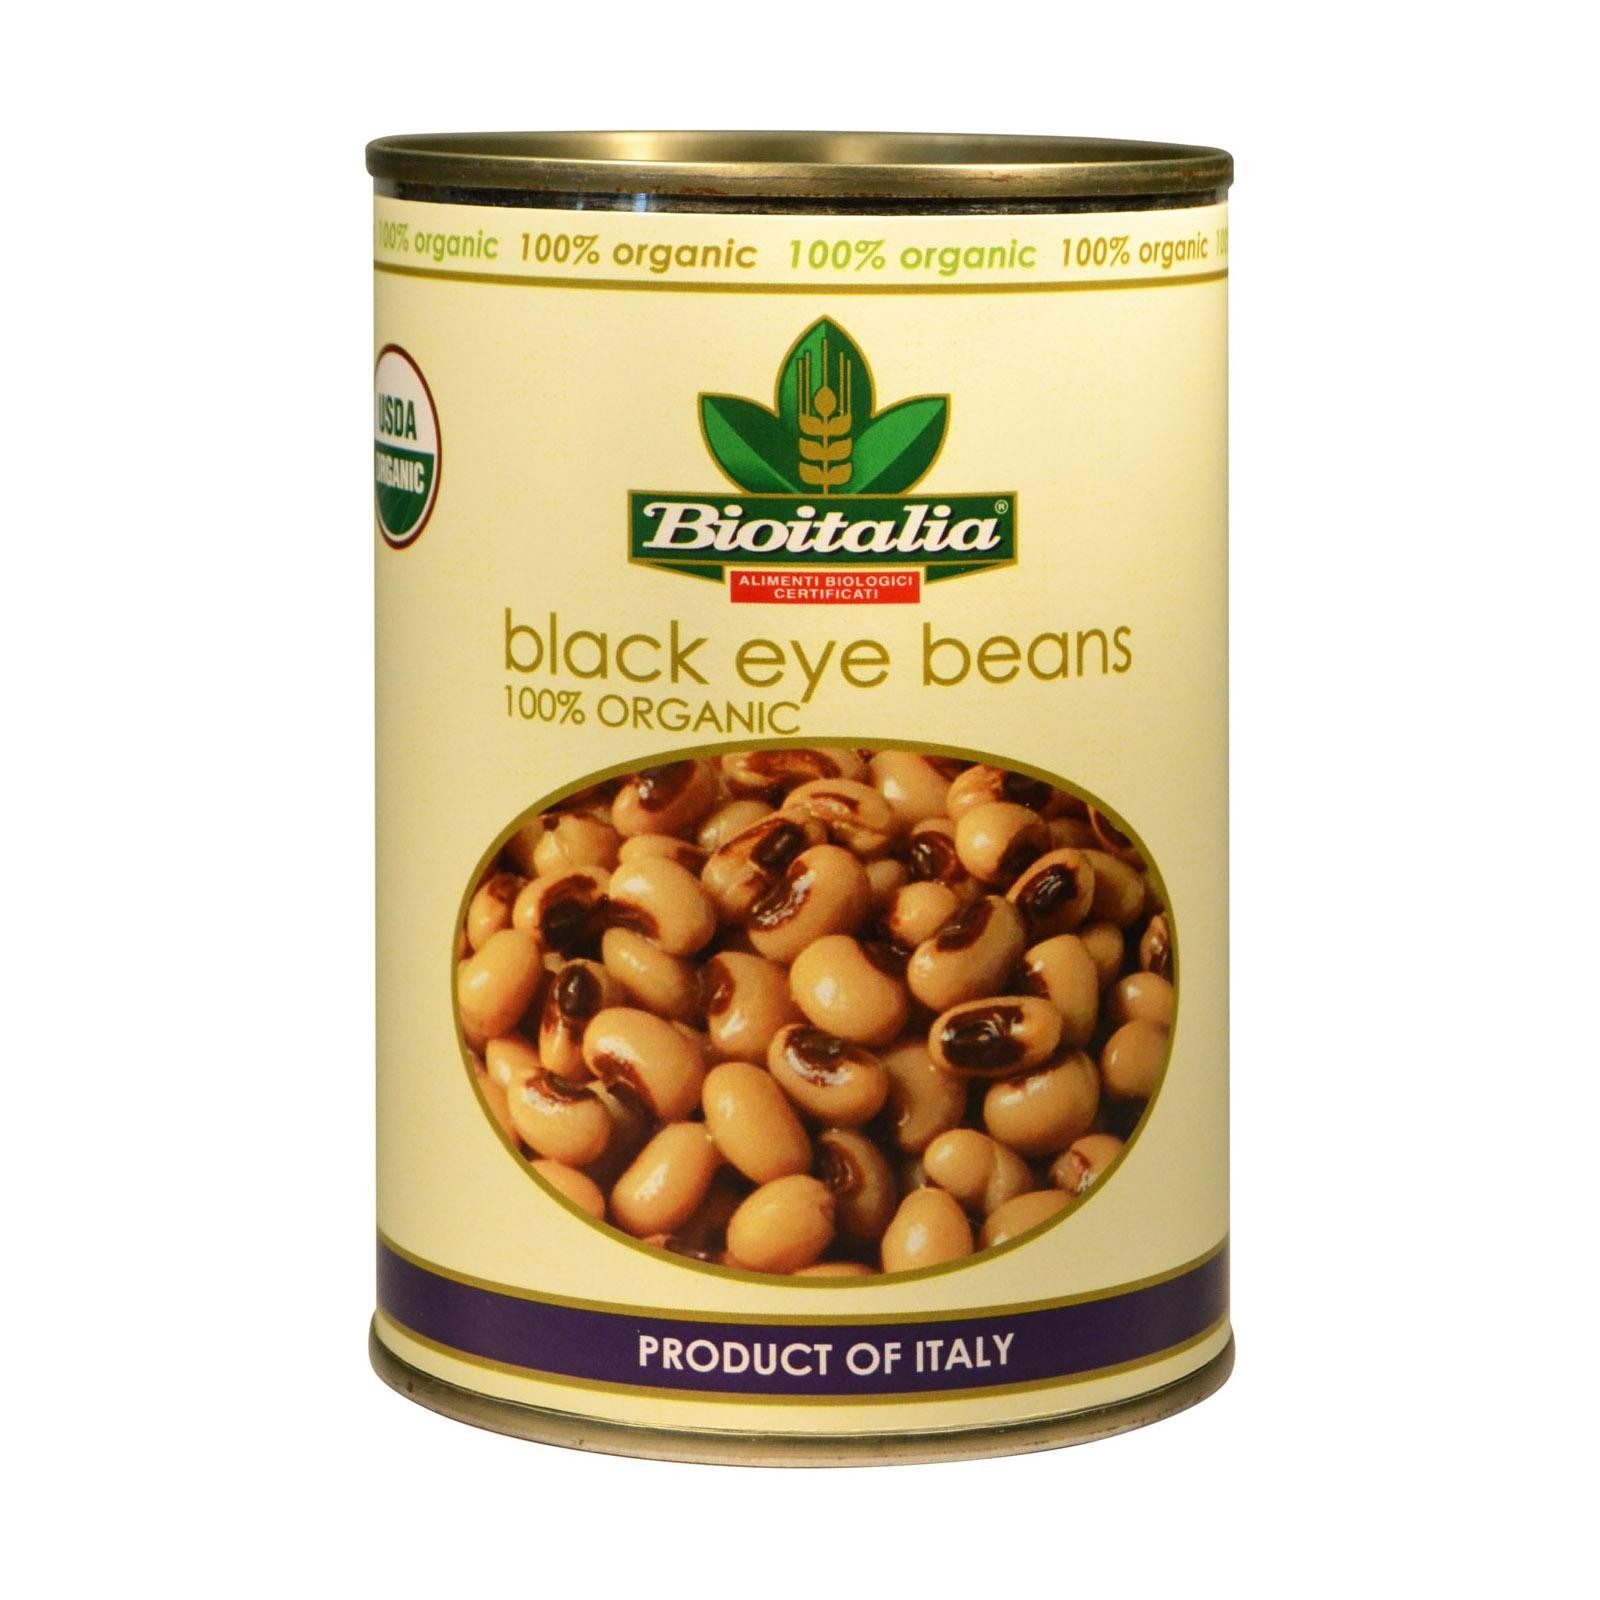 Bioitalia Beans - Black Eyed Peas - Pack of 12 - 14 Oz.